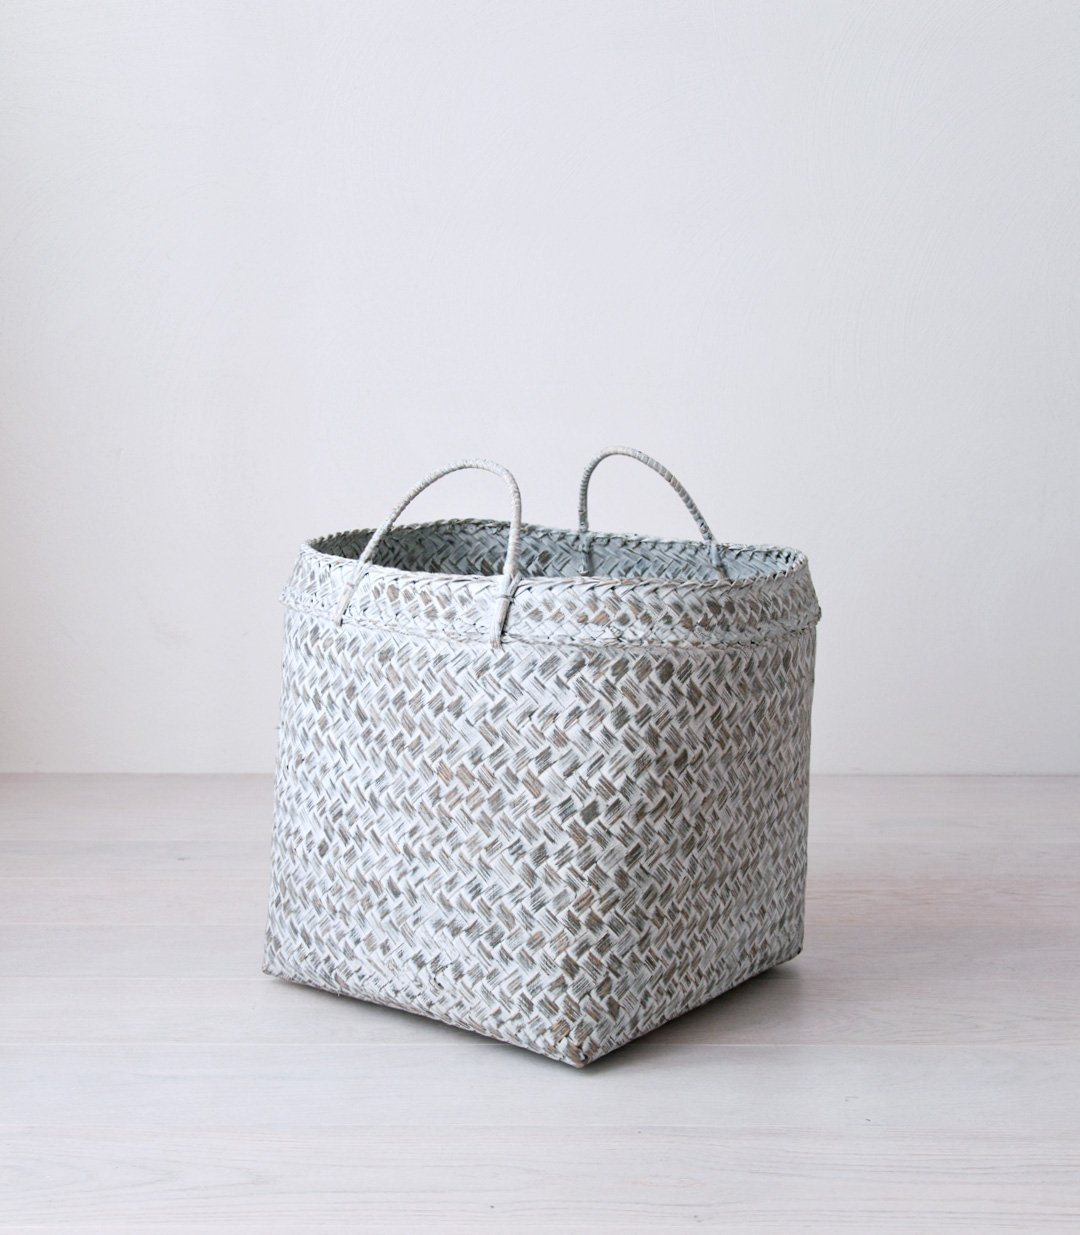 MARGA bamboo basket grey - baskets - ARVA Living